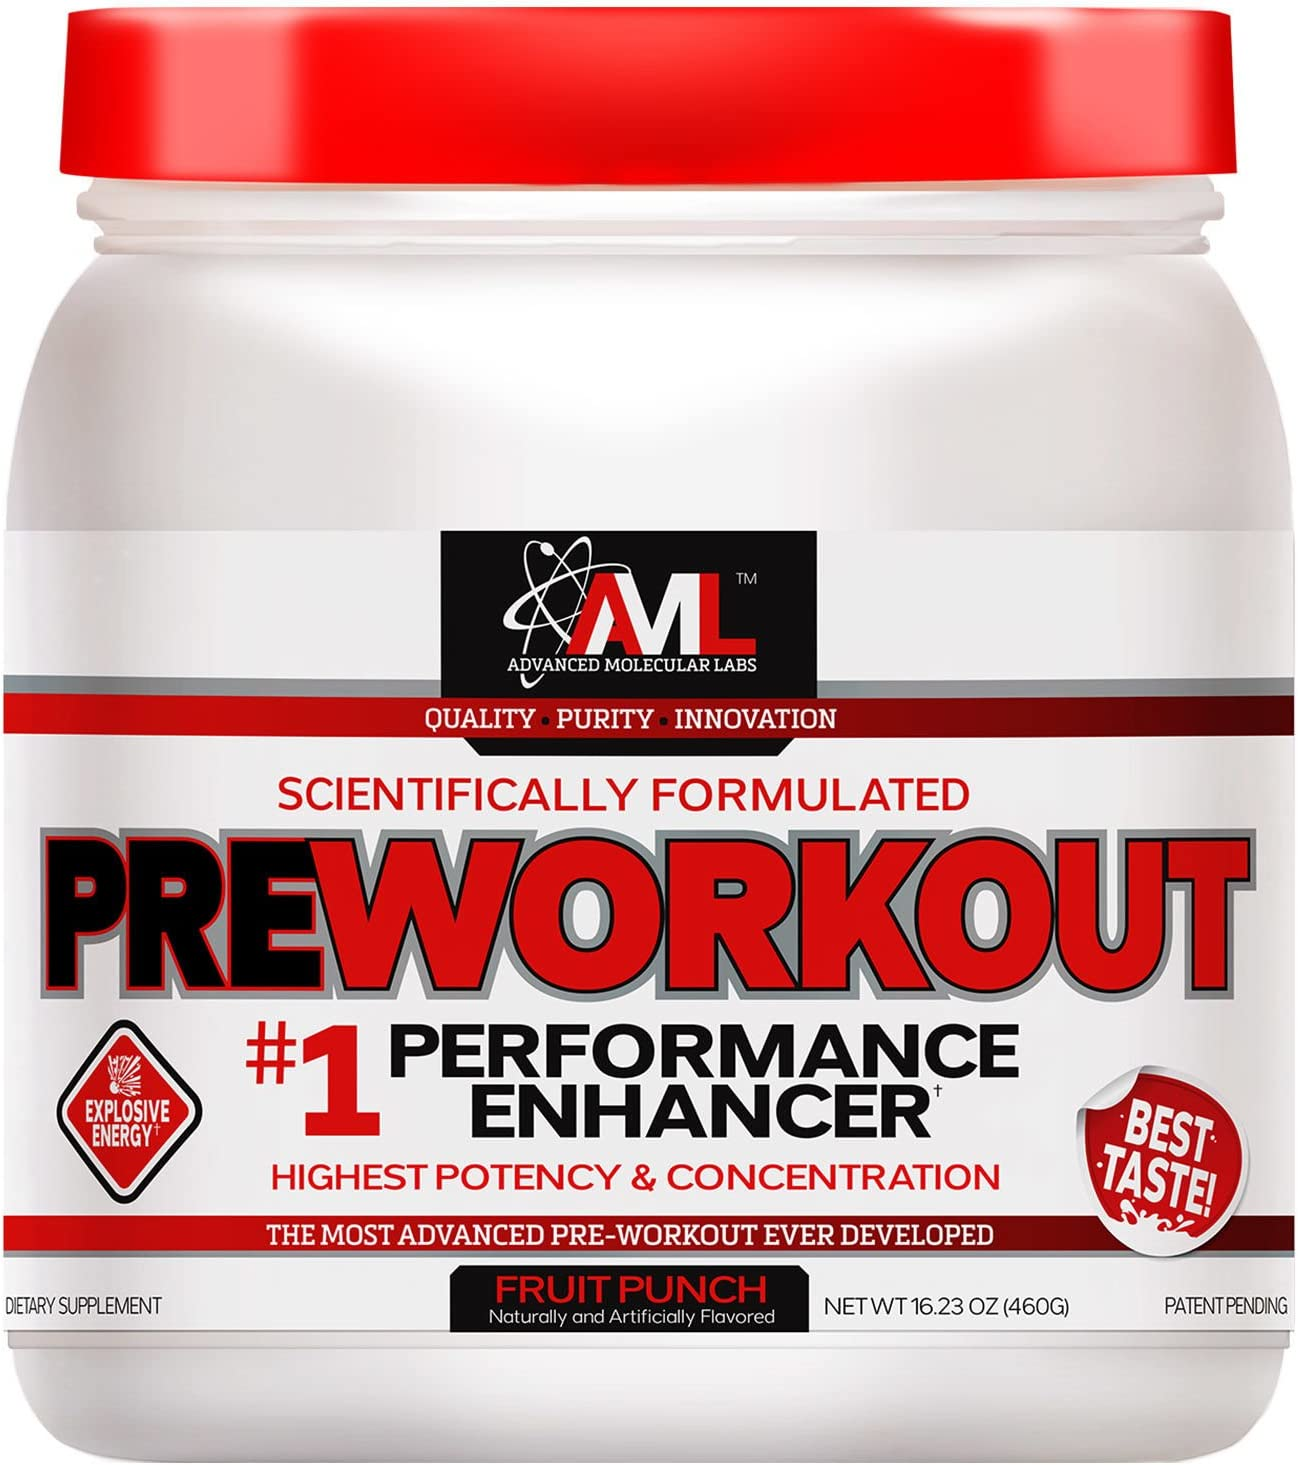 Advanced Molecular Labs Preworkout, Fruit Punch, 520 Grams – Train Harder, Train Longer – with 8g Citrulline Malate, 5g Creatine and 2.5g Betaine